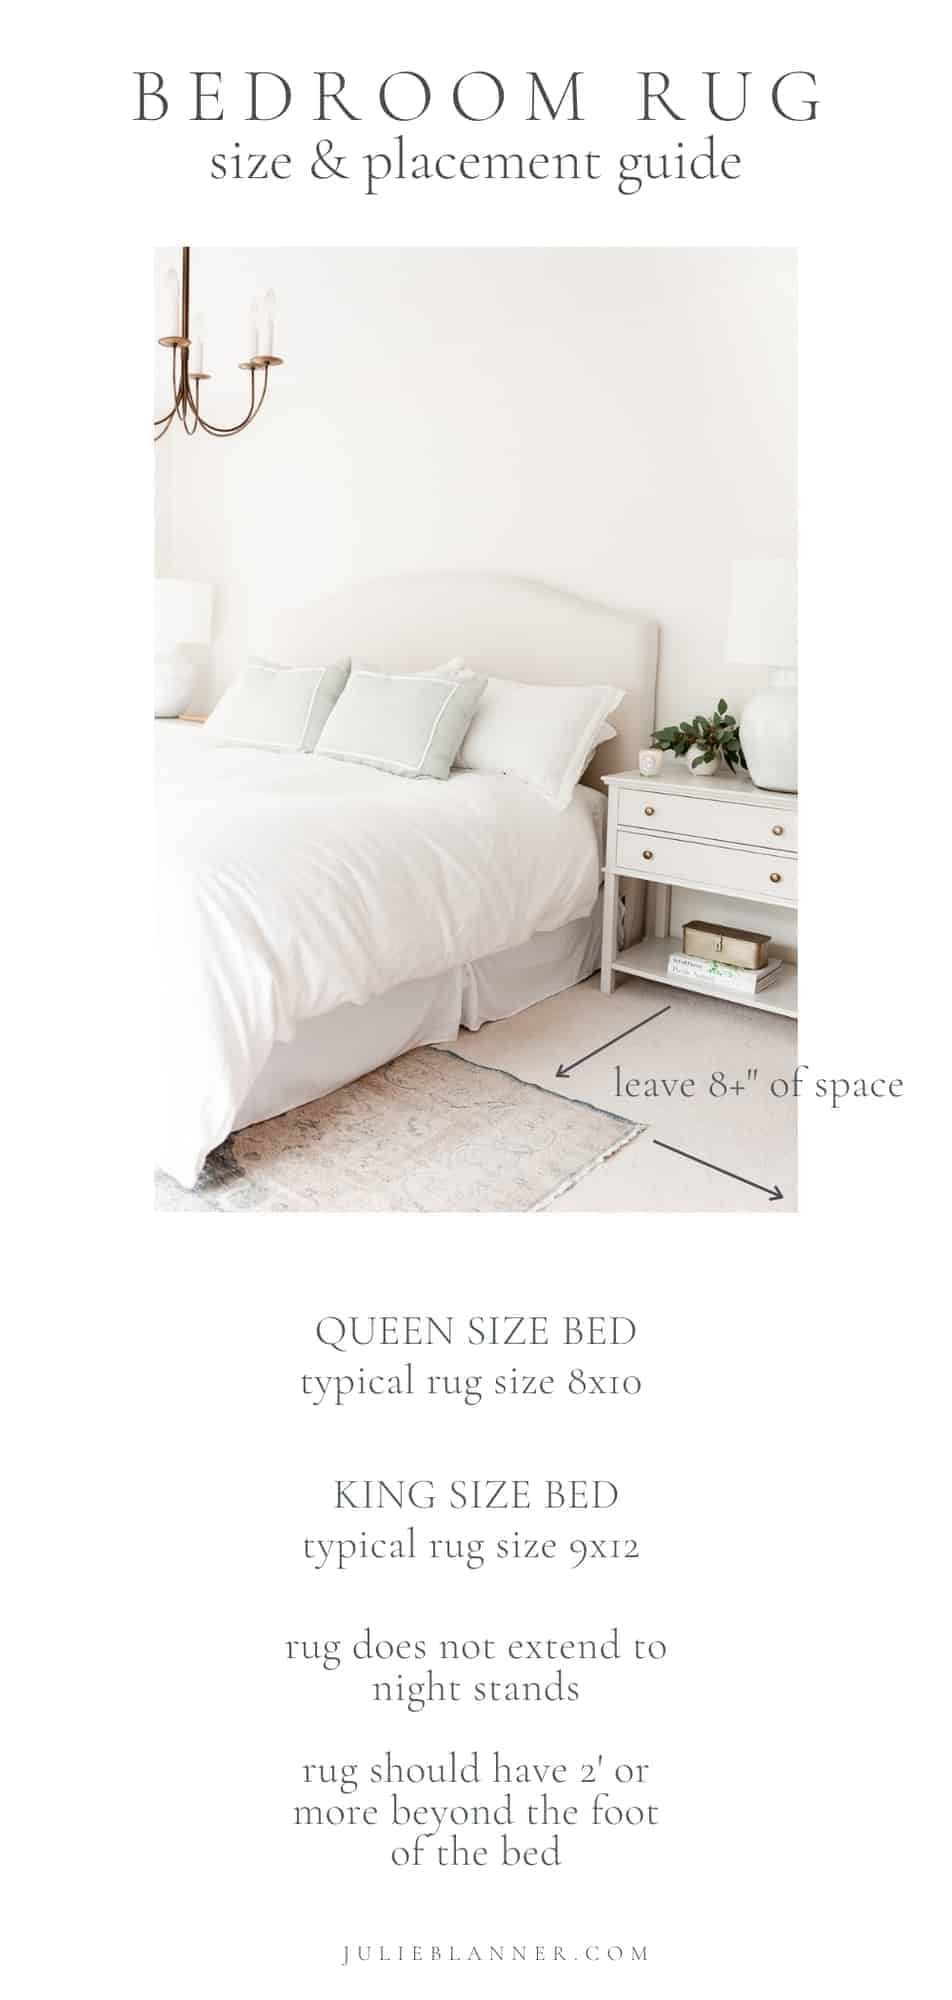 bedroom rug size and placement guide with text overlay